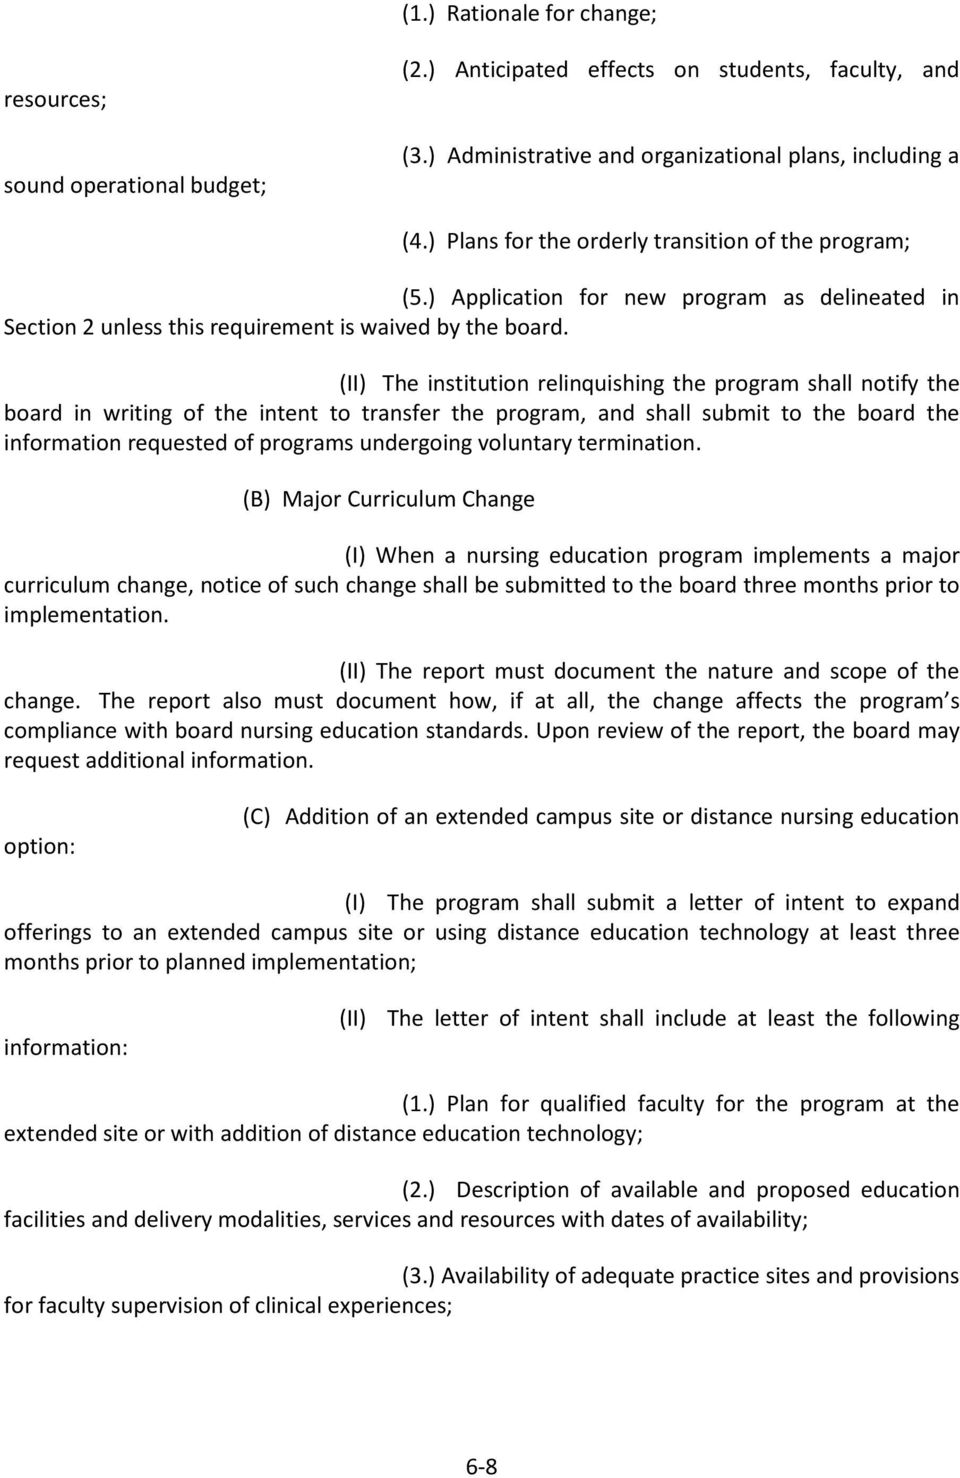 (II) The institution relinquishing the program shall notify the board in writing of the intent to transfer the program, and shall submit to the board the information requested of programs undergoing